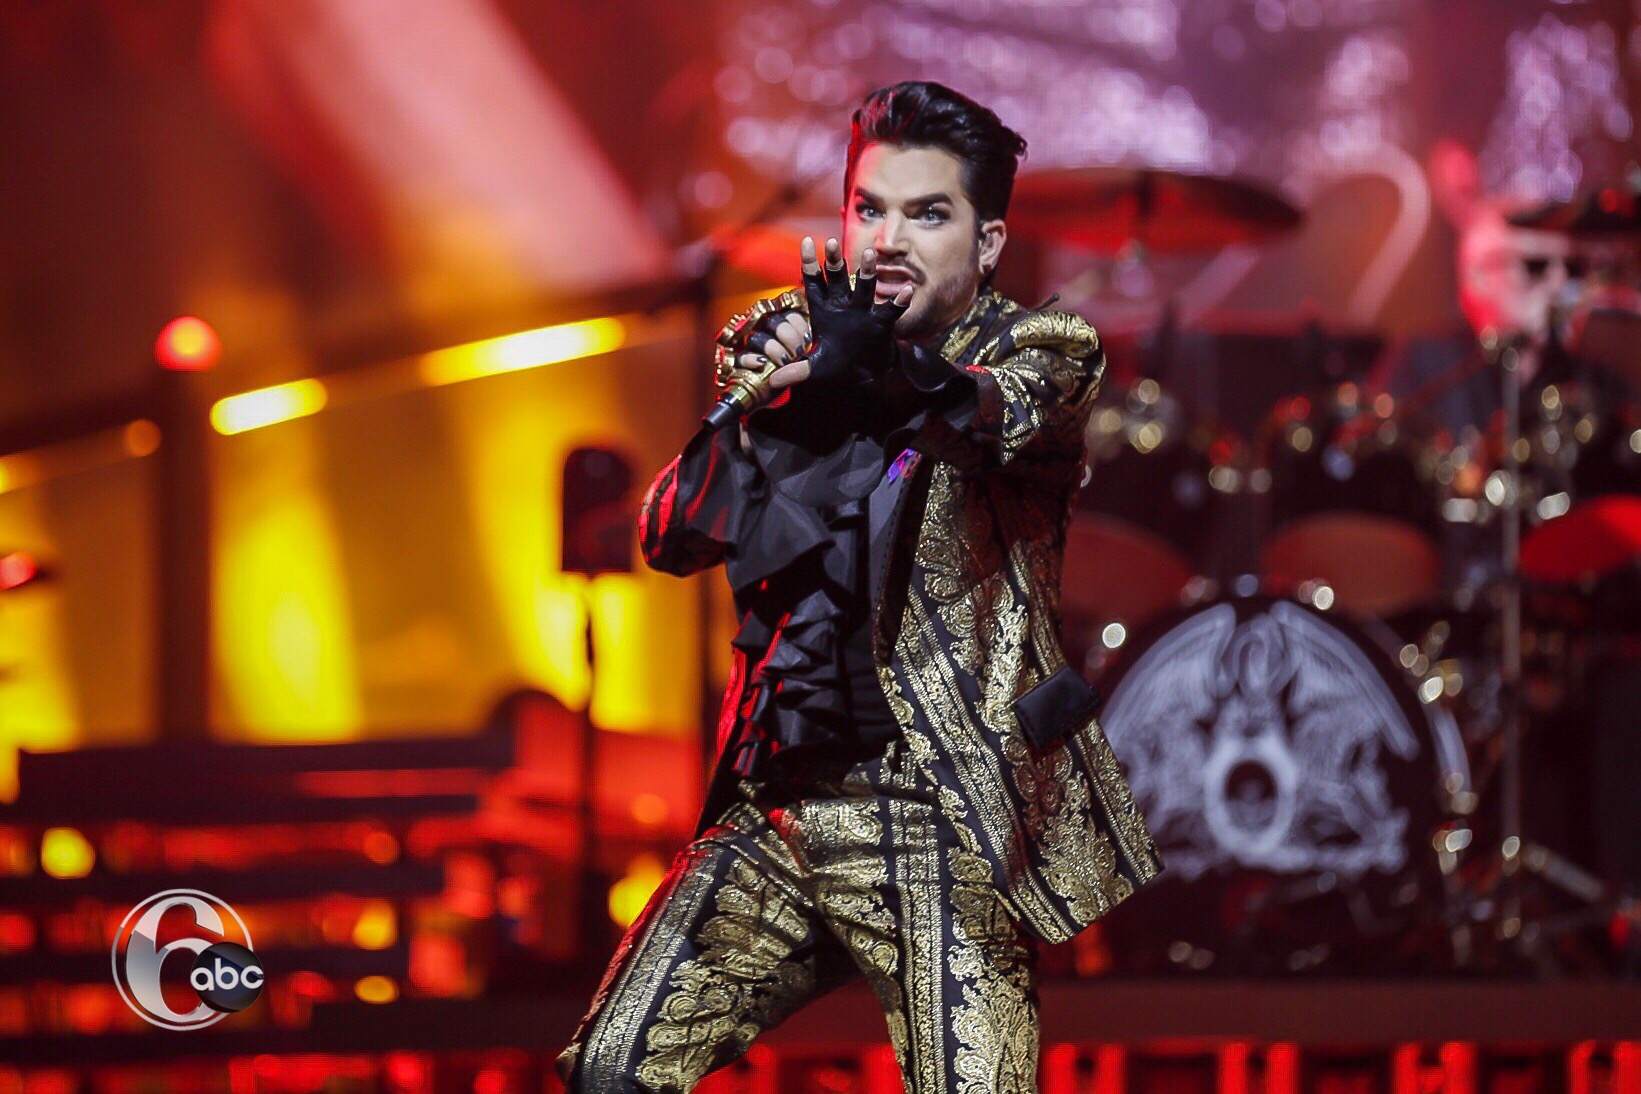 Queen and Adam Lambert Perform To Sold Out Crowd | 6abc com